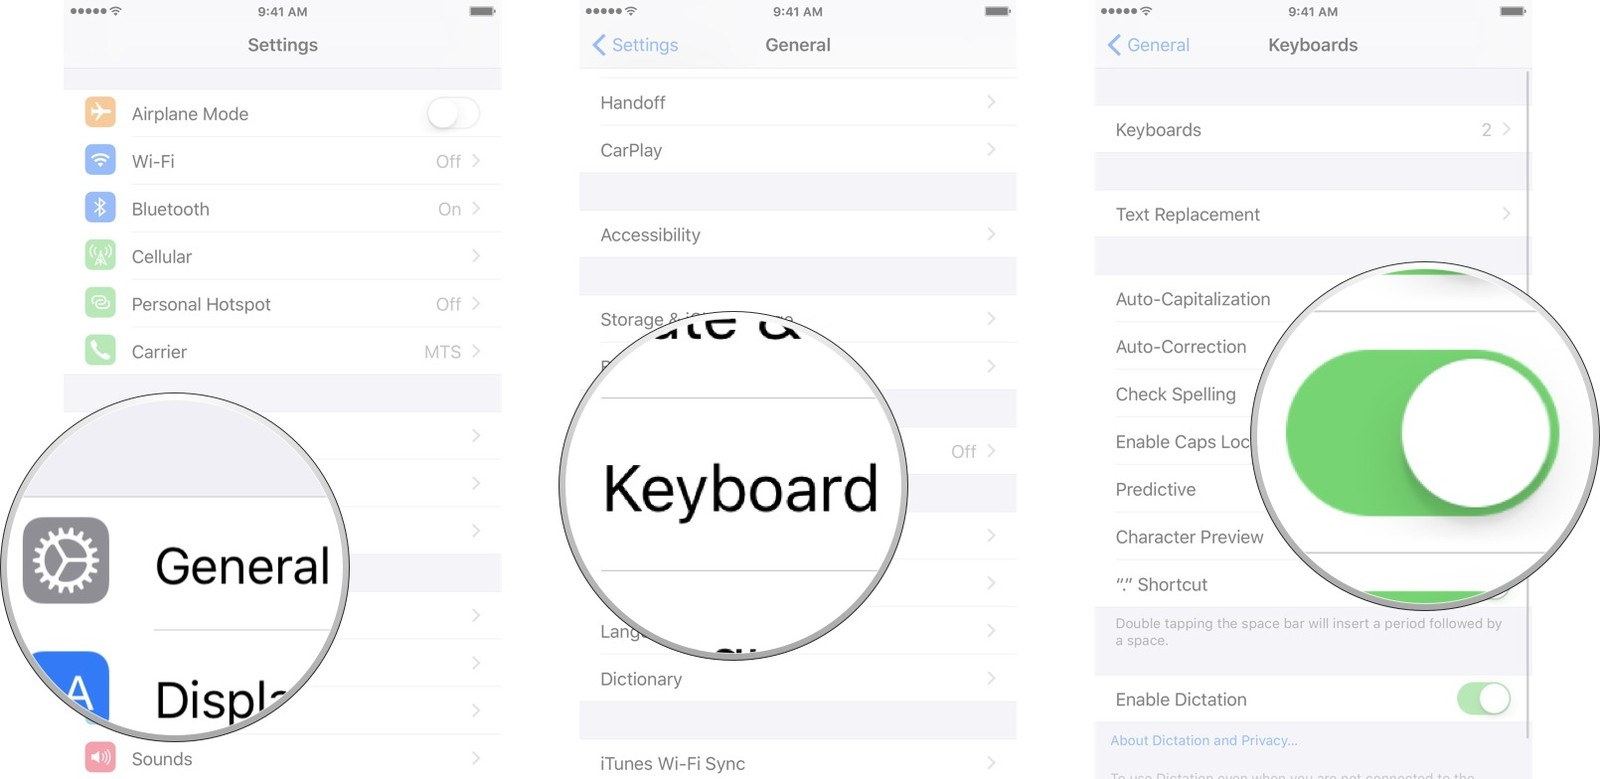 Launch the Settings app, tap General, tap Keyboard, and then tap on the on/off switch.